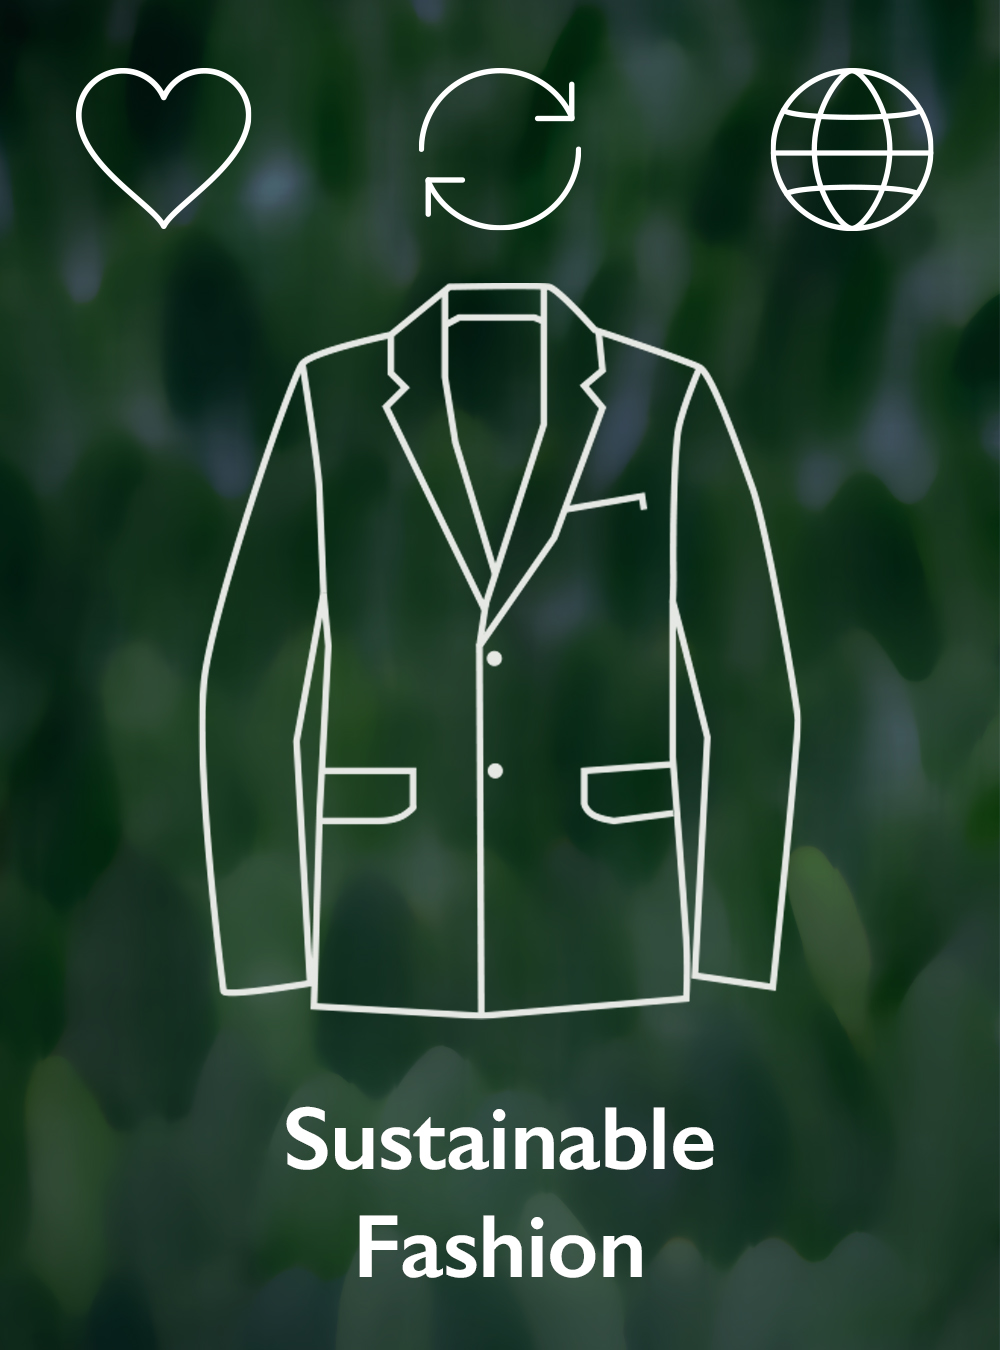 Sustainable Fashion for Company